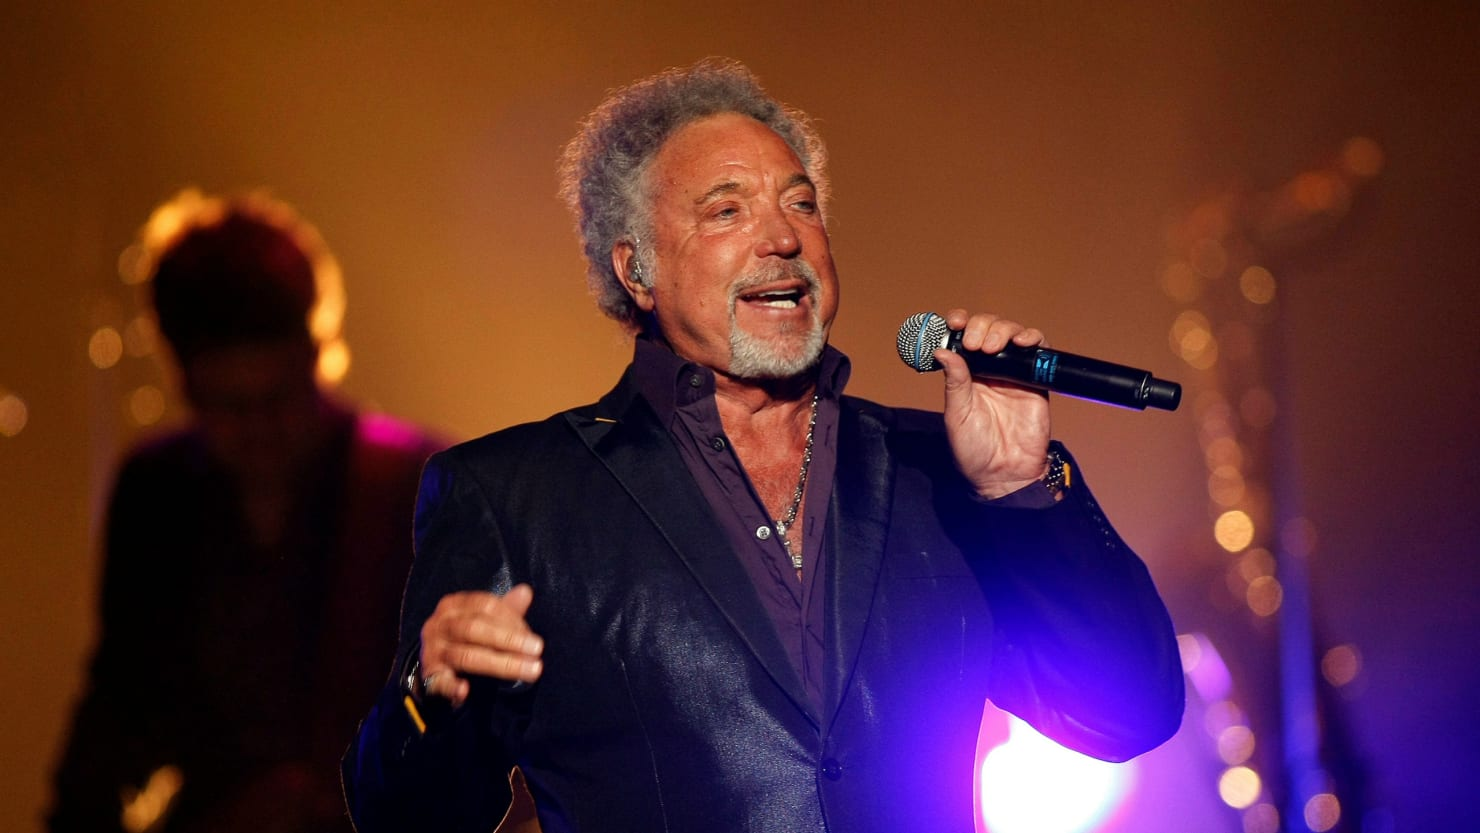 themes in tom jones We've ranked all the james bond theme songs from worst to  this is one of the most underrated james bond theme songs james bond themes  tom jones sings.